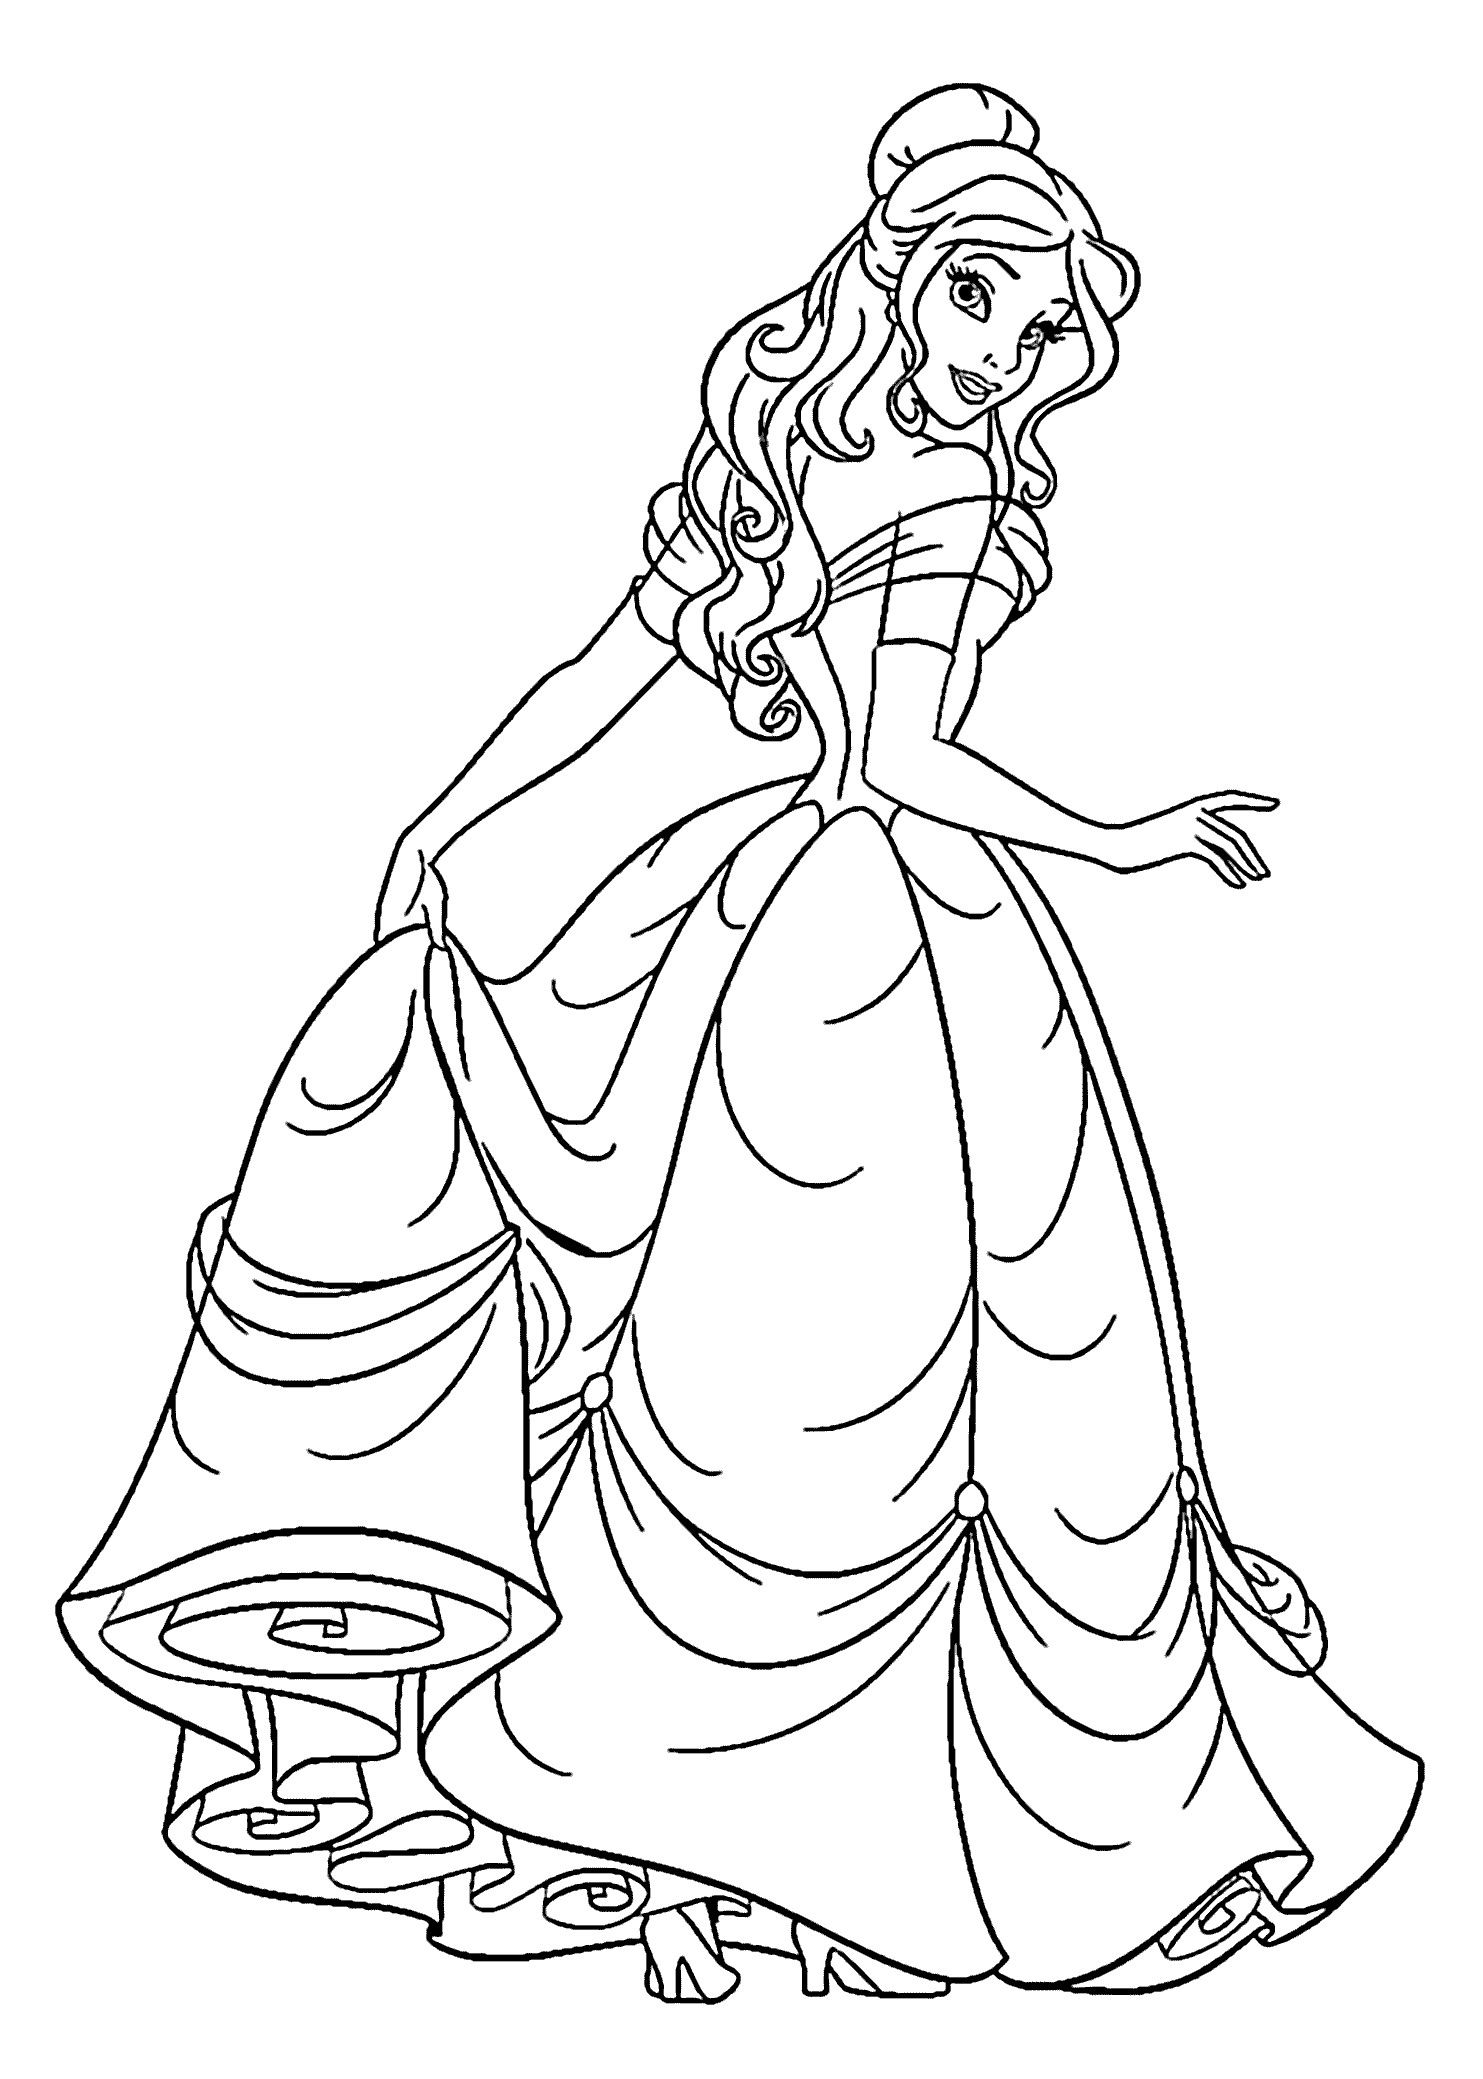 Anime Disney Princess Coloring Pages Through The